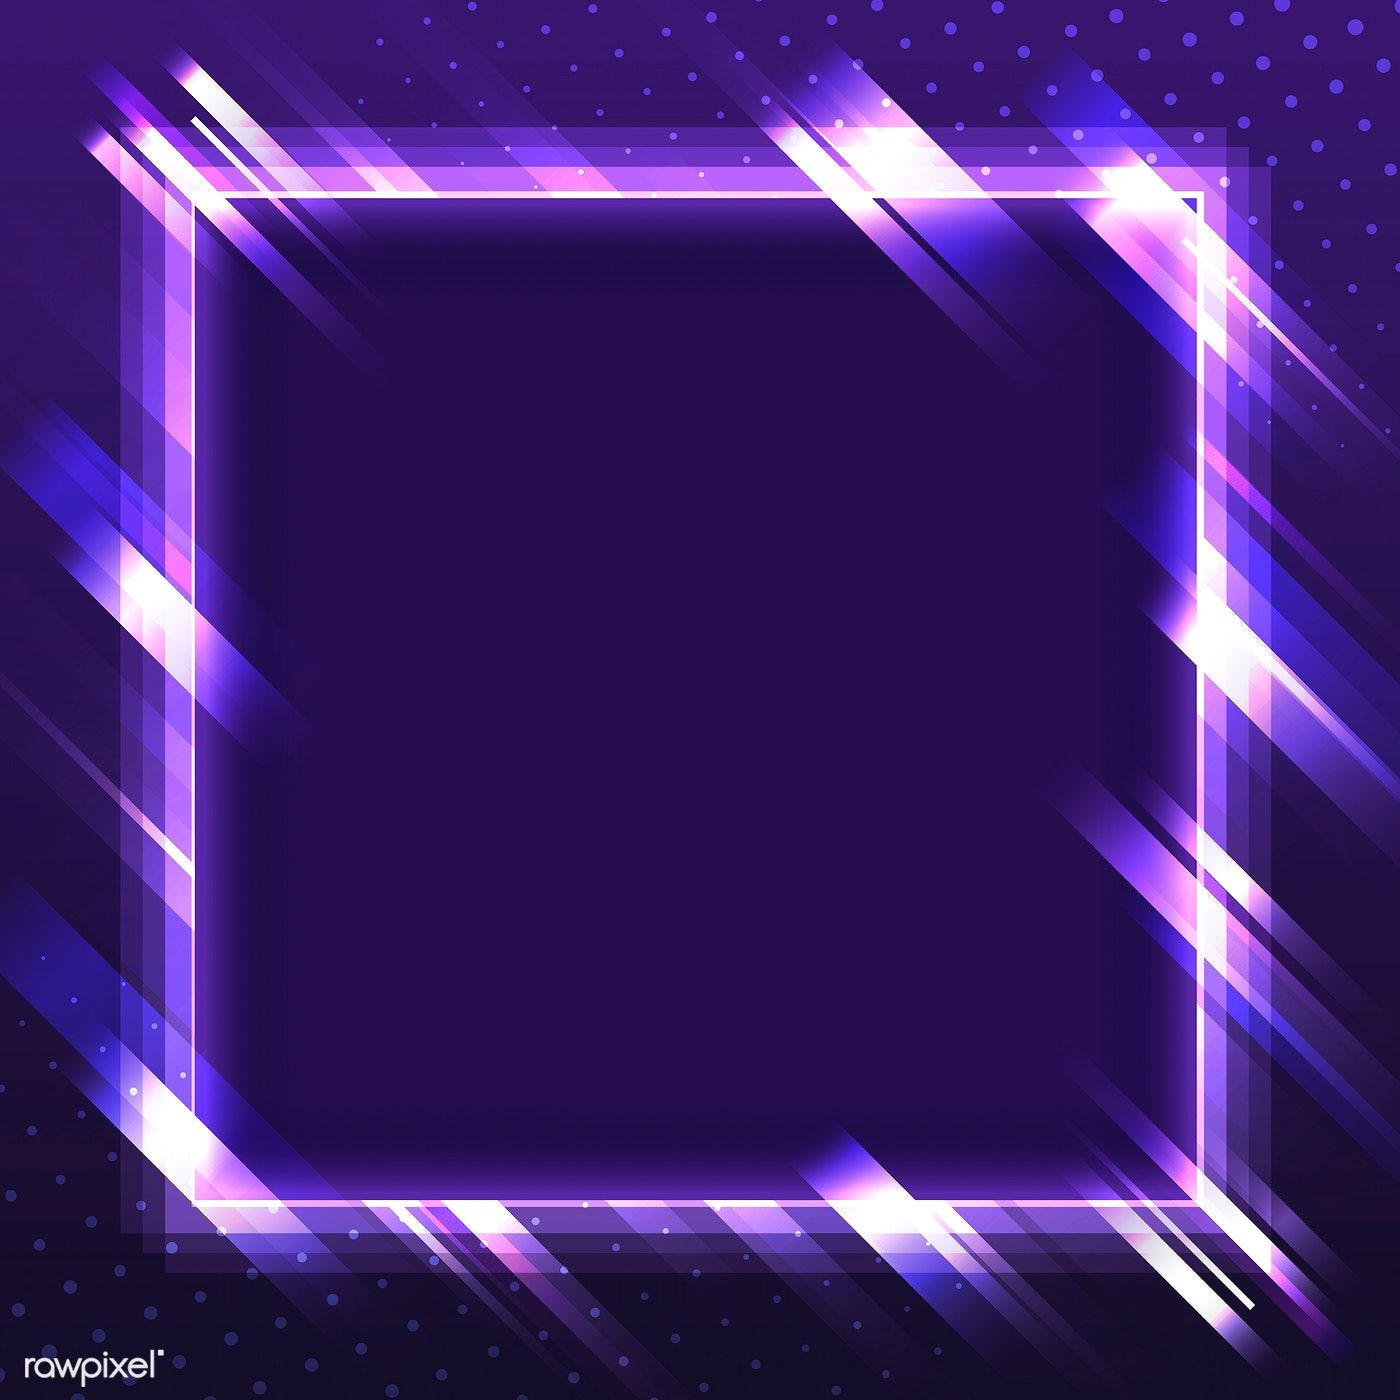 Blank Violet Square Neon Signboard Vector Free Image By Rawpixel